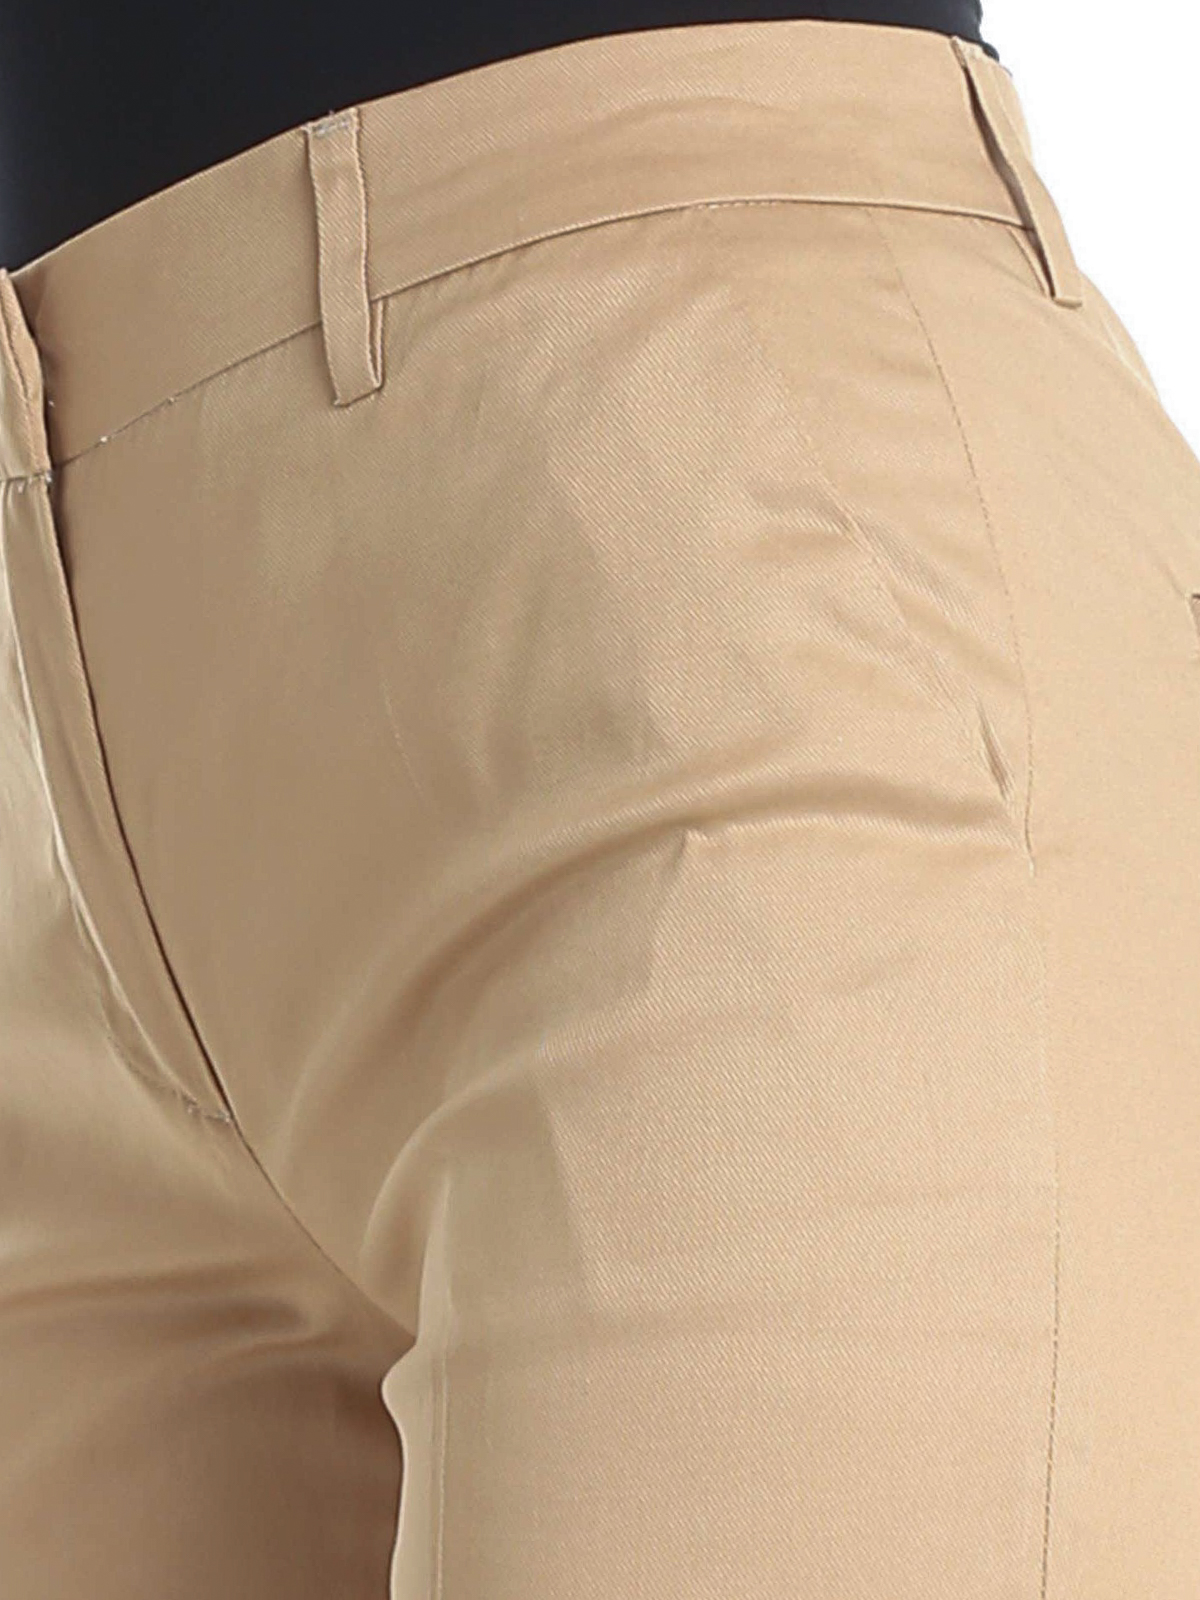 L' Autre Chose - Camel cotton twill pants with turn-ups